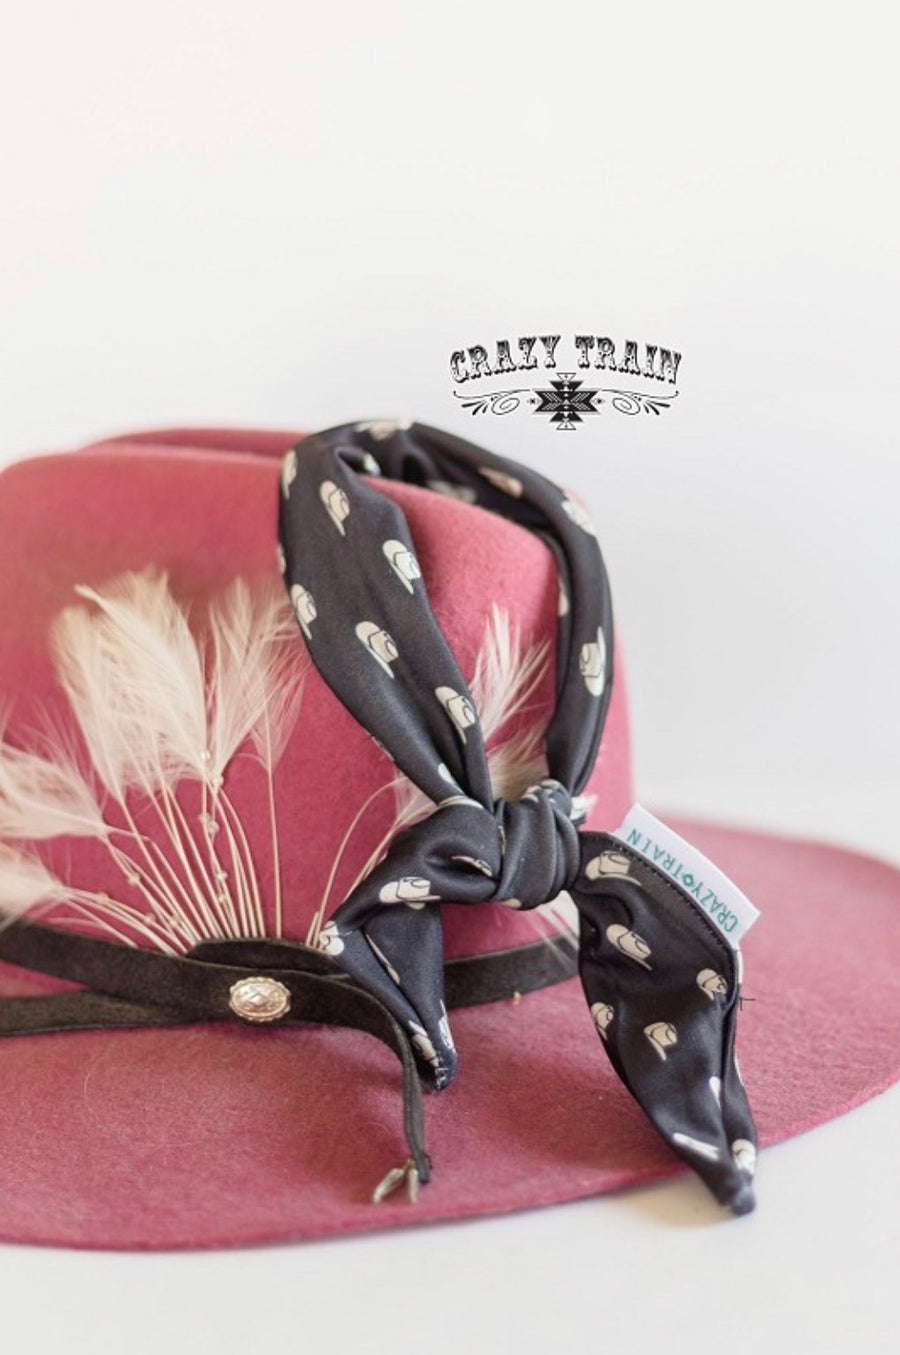 Ten Gallon Cowboy Hat Tie Headband